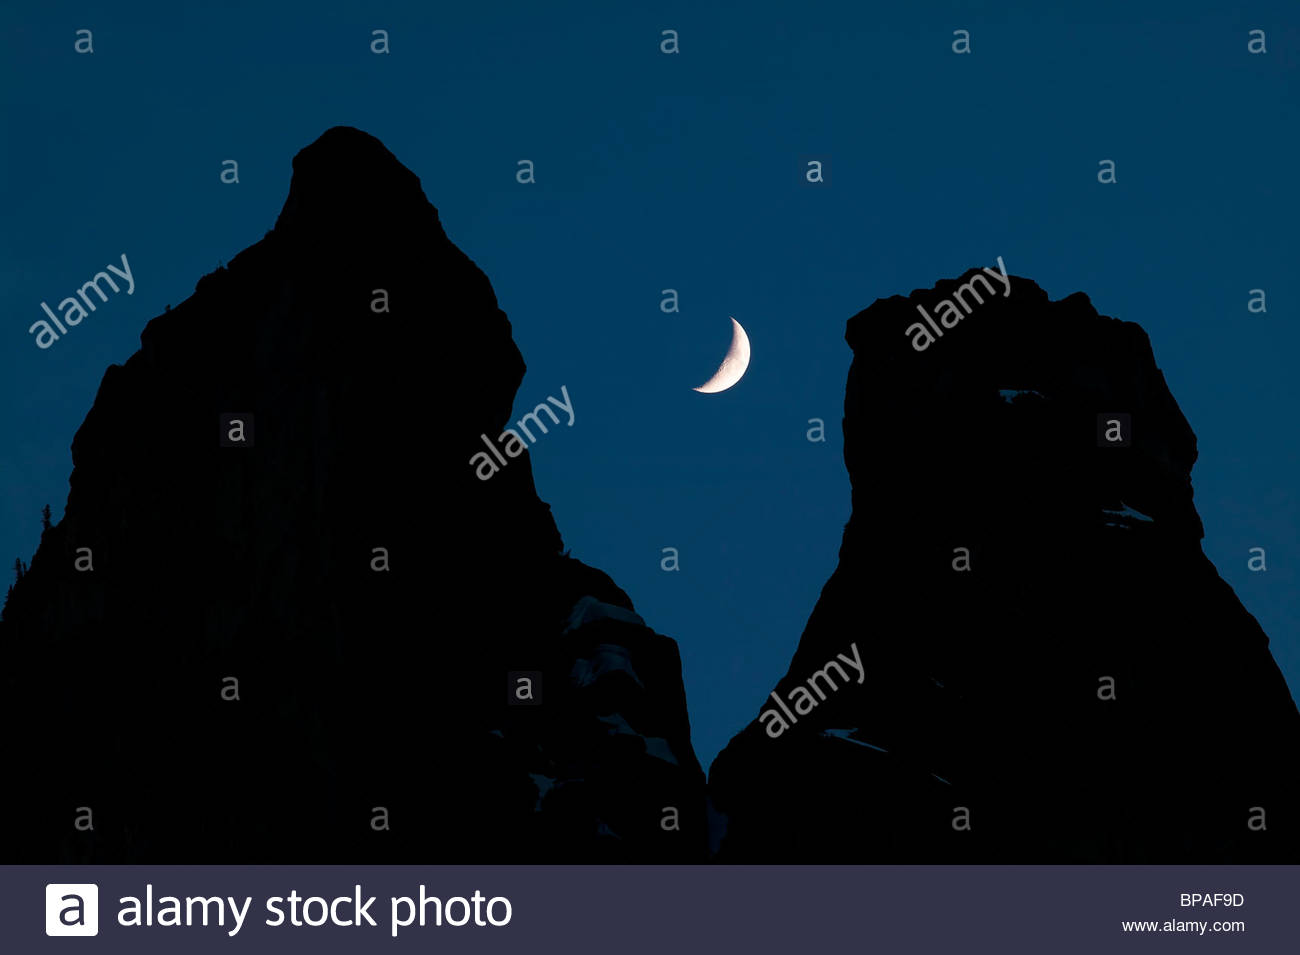 The Early Winters Spires, located in Washington's North Cascades, frame a crescent moon. - Stock Image